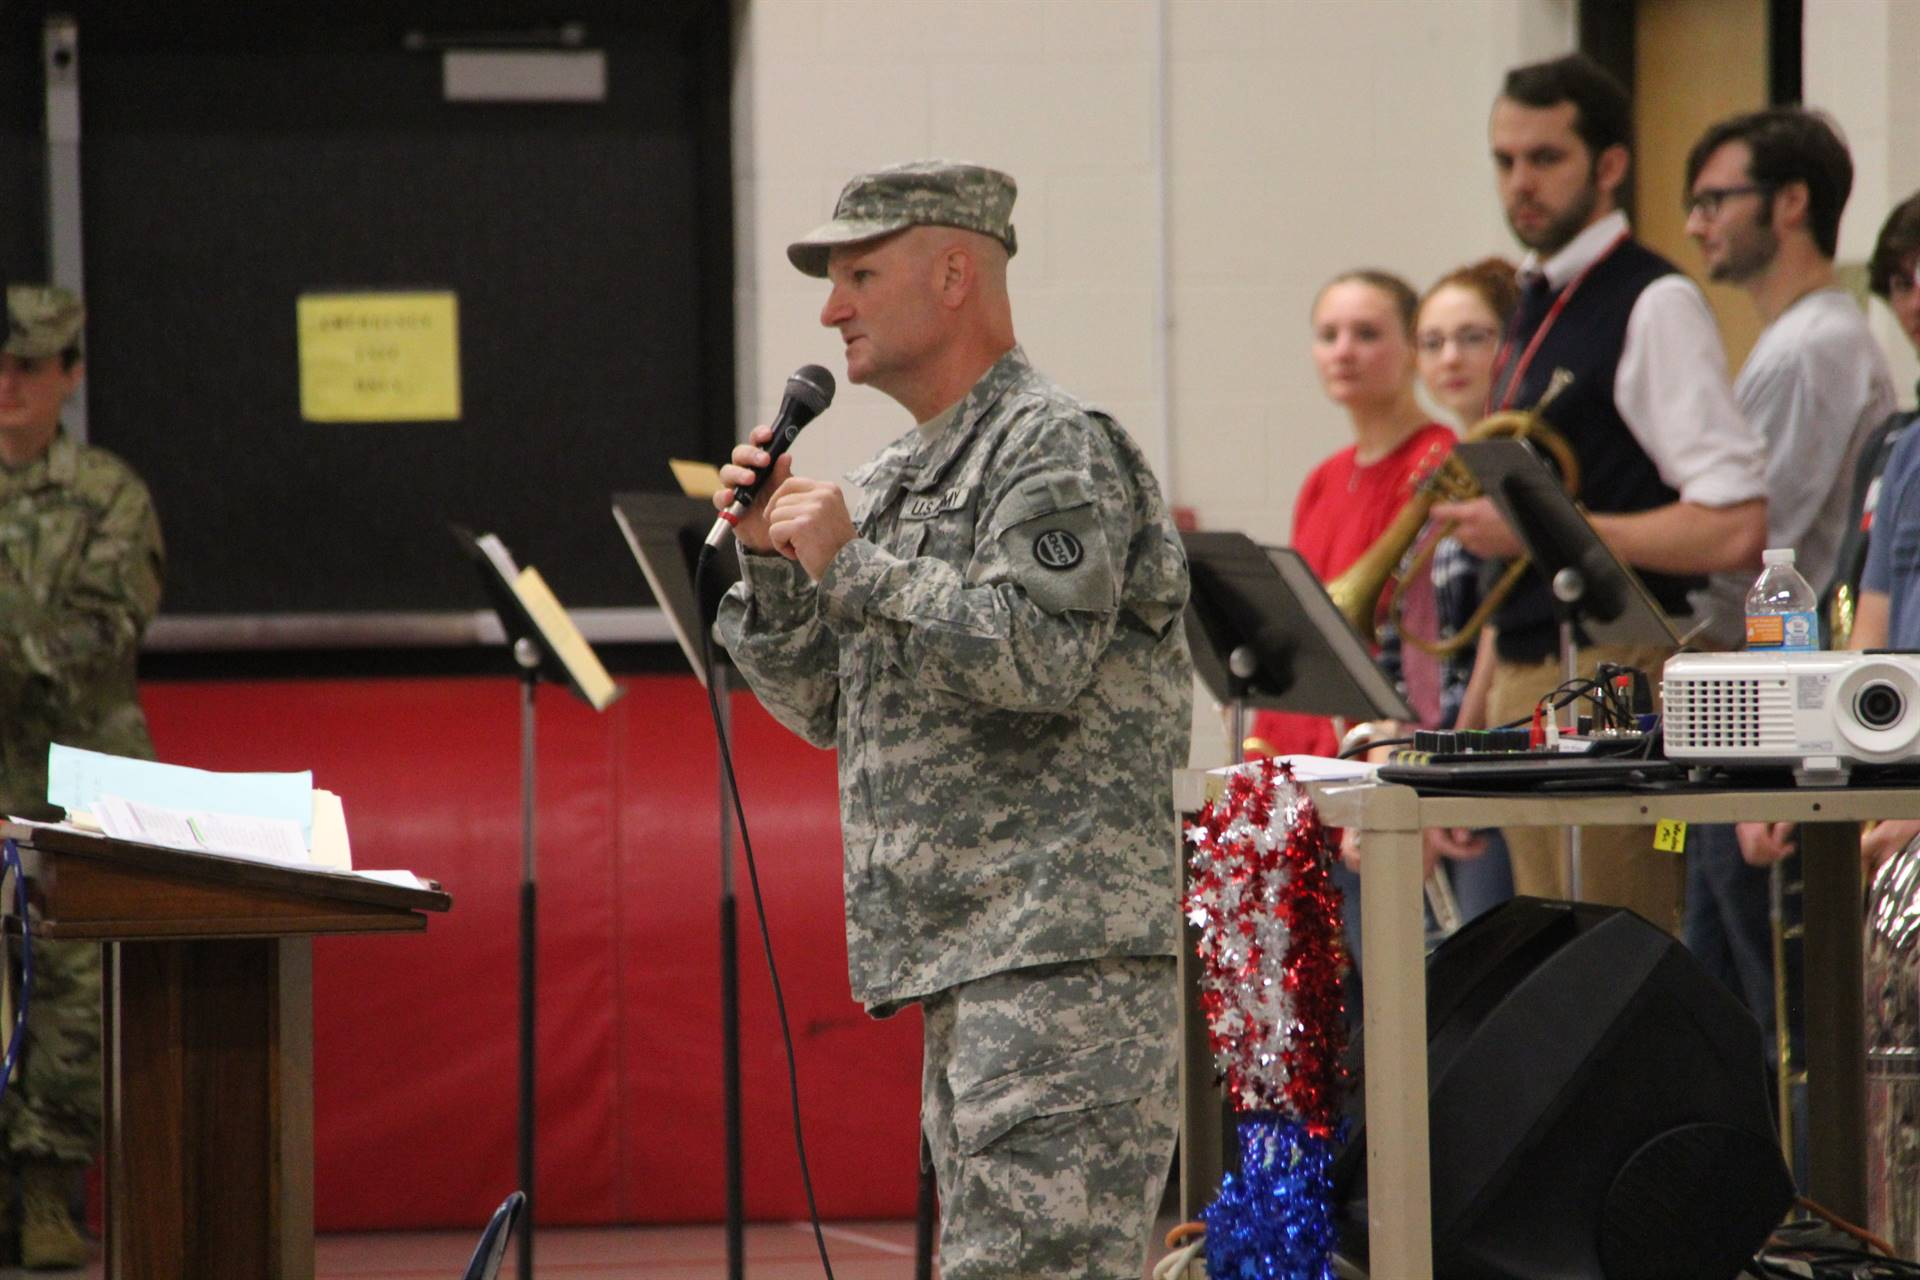 veteran speaking to assembly